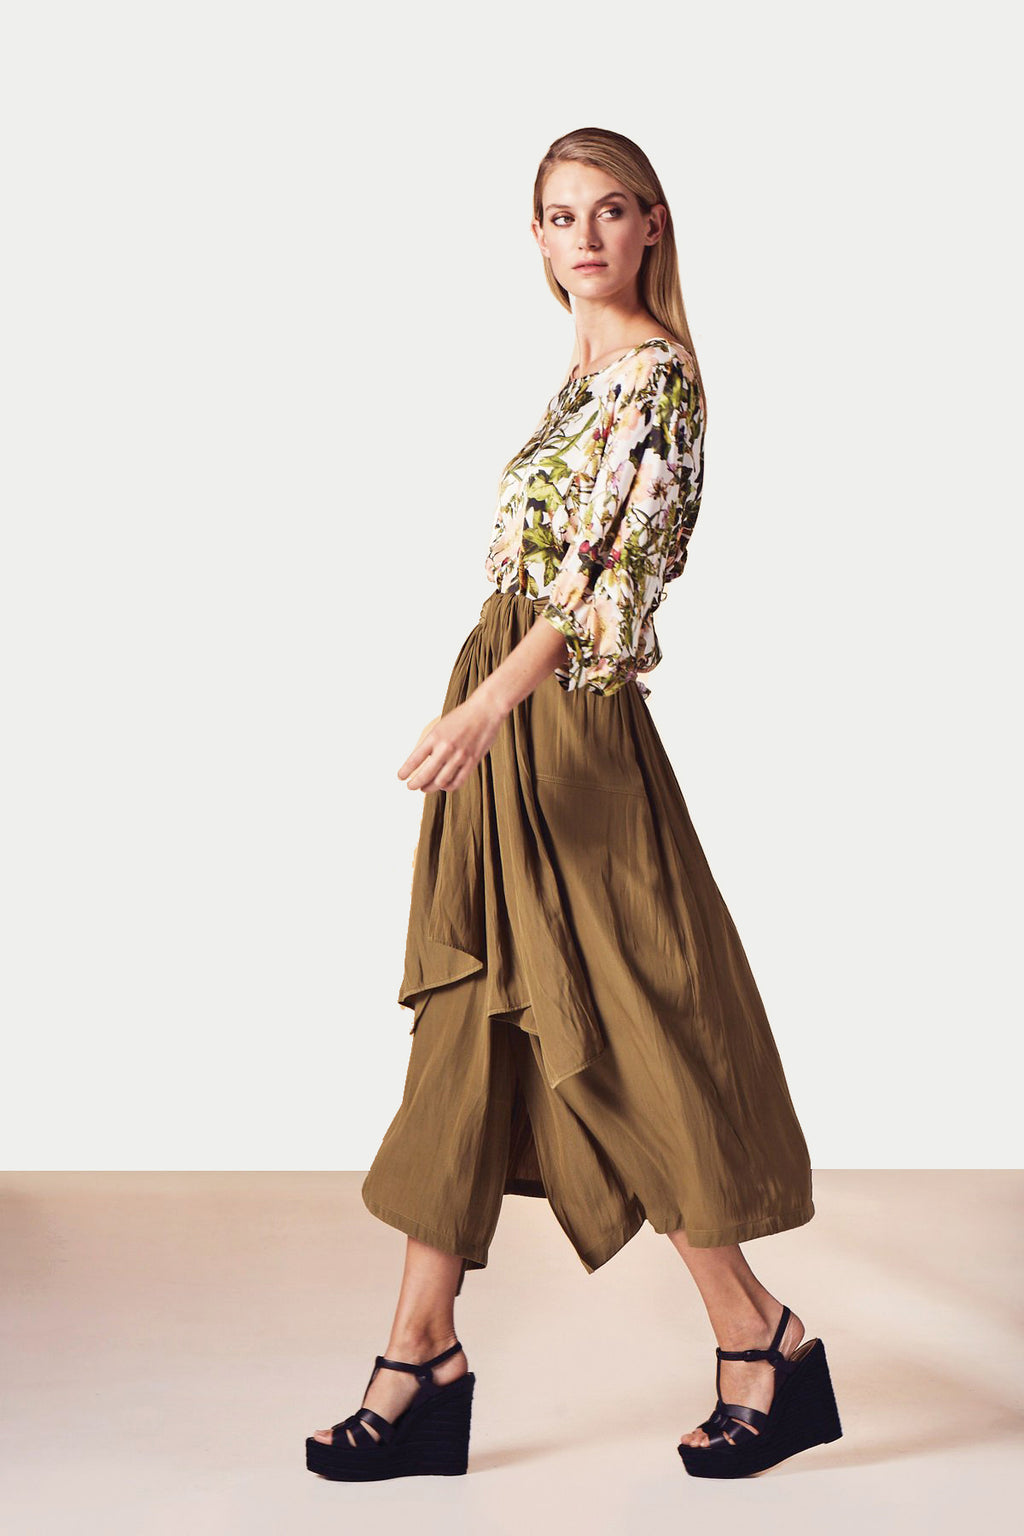 Buy Fold Skirt from MELA PURDIE at PAYA boutique